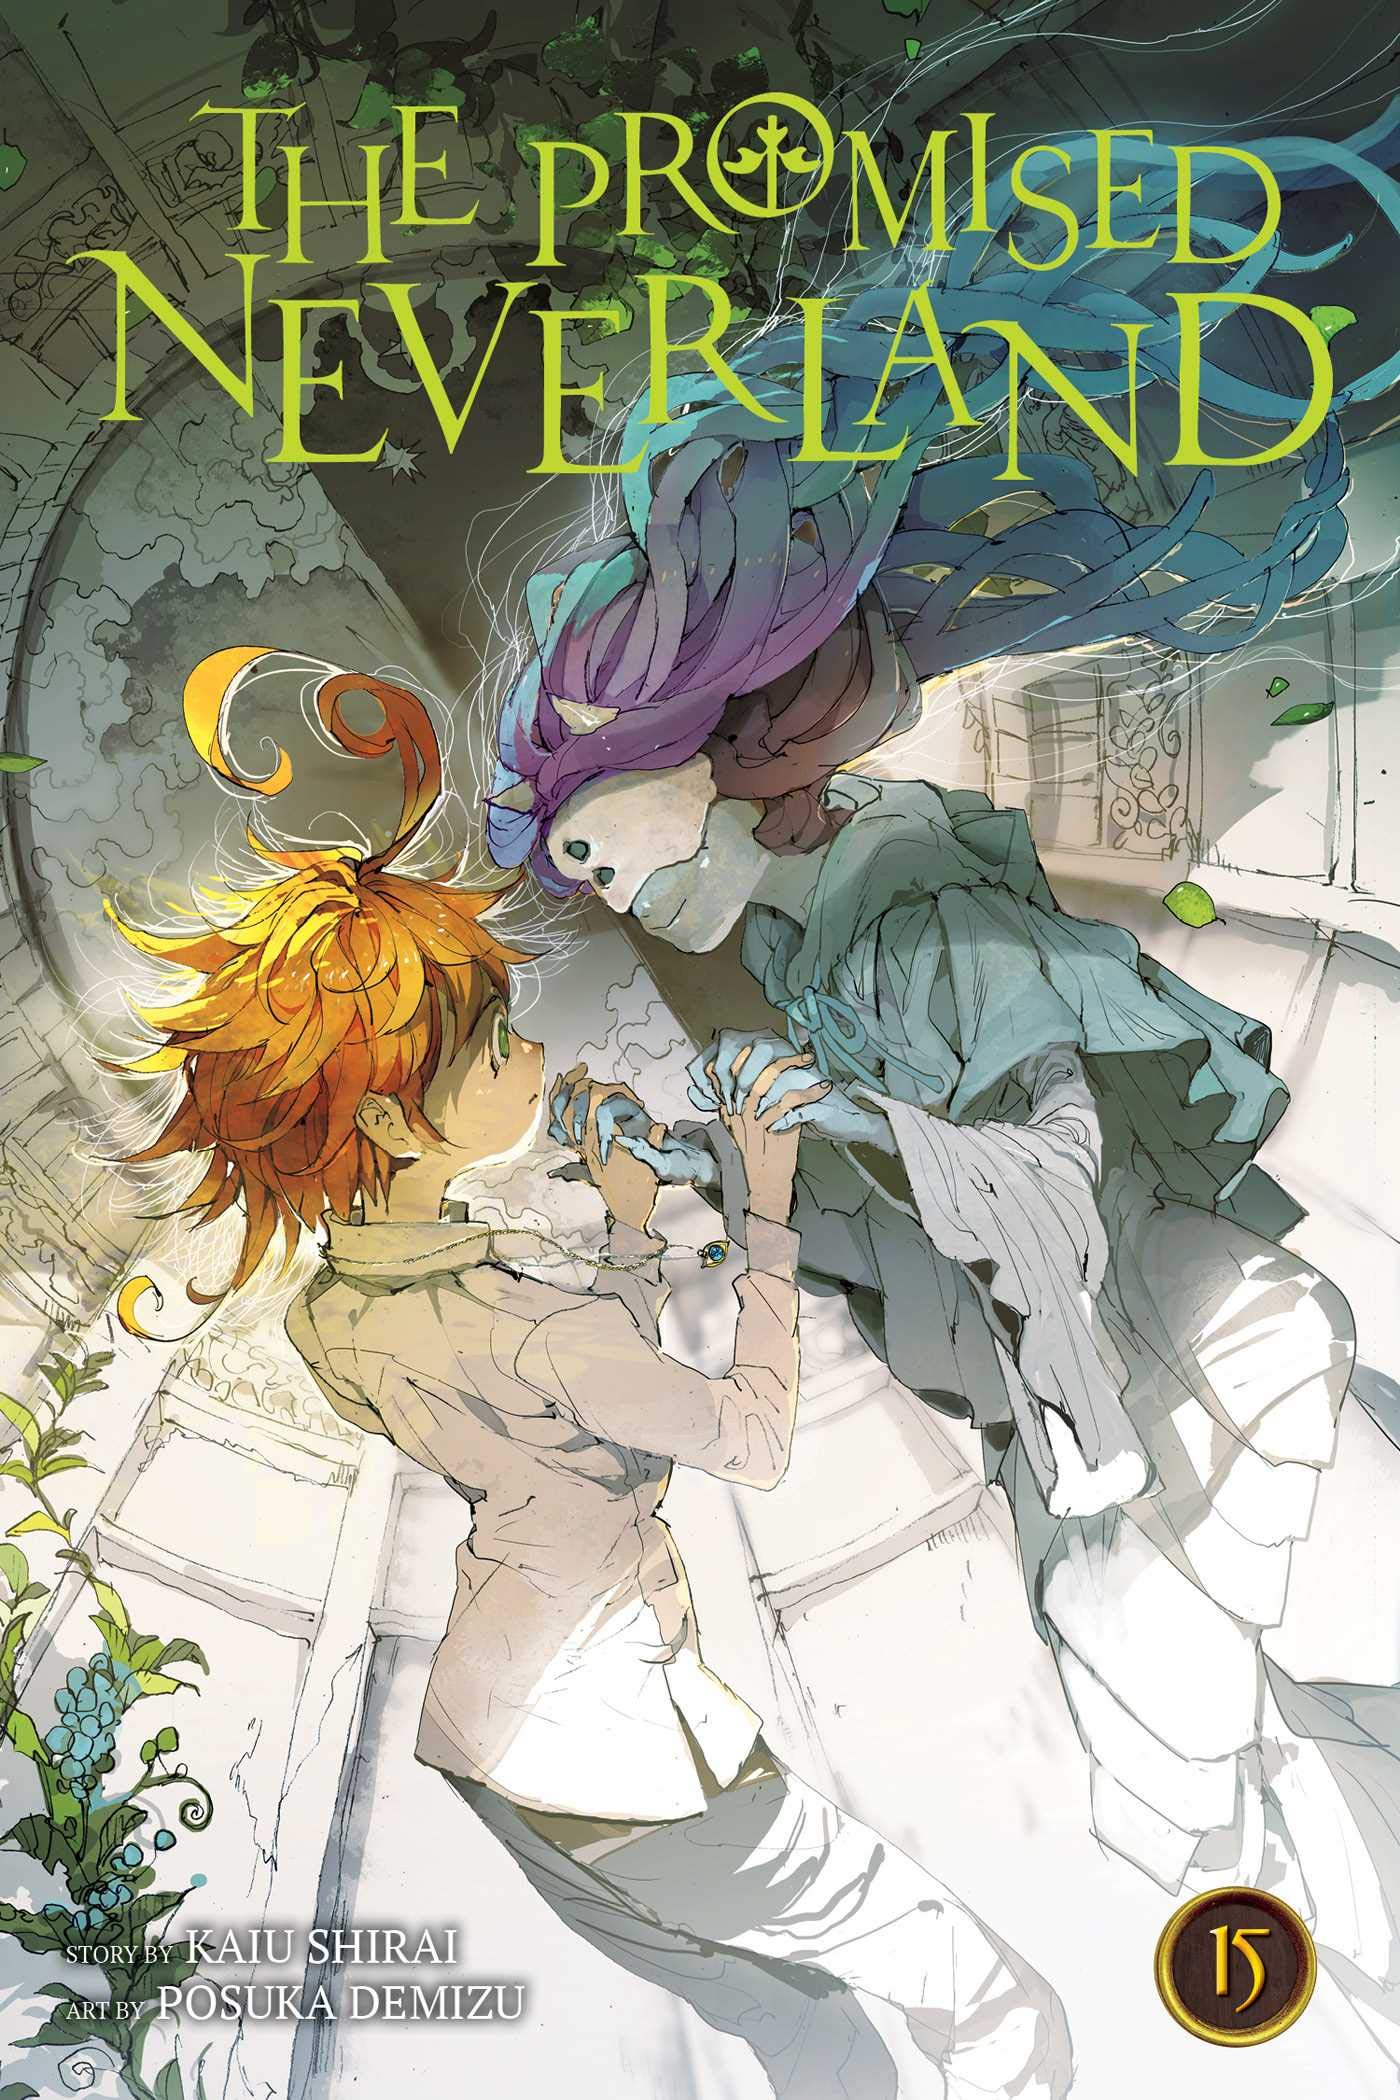 The Promised Neverland - Vol. 15